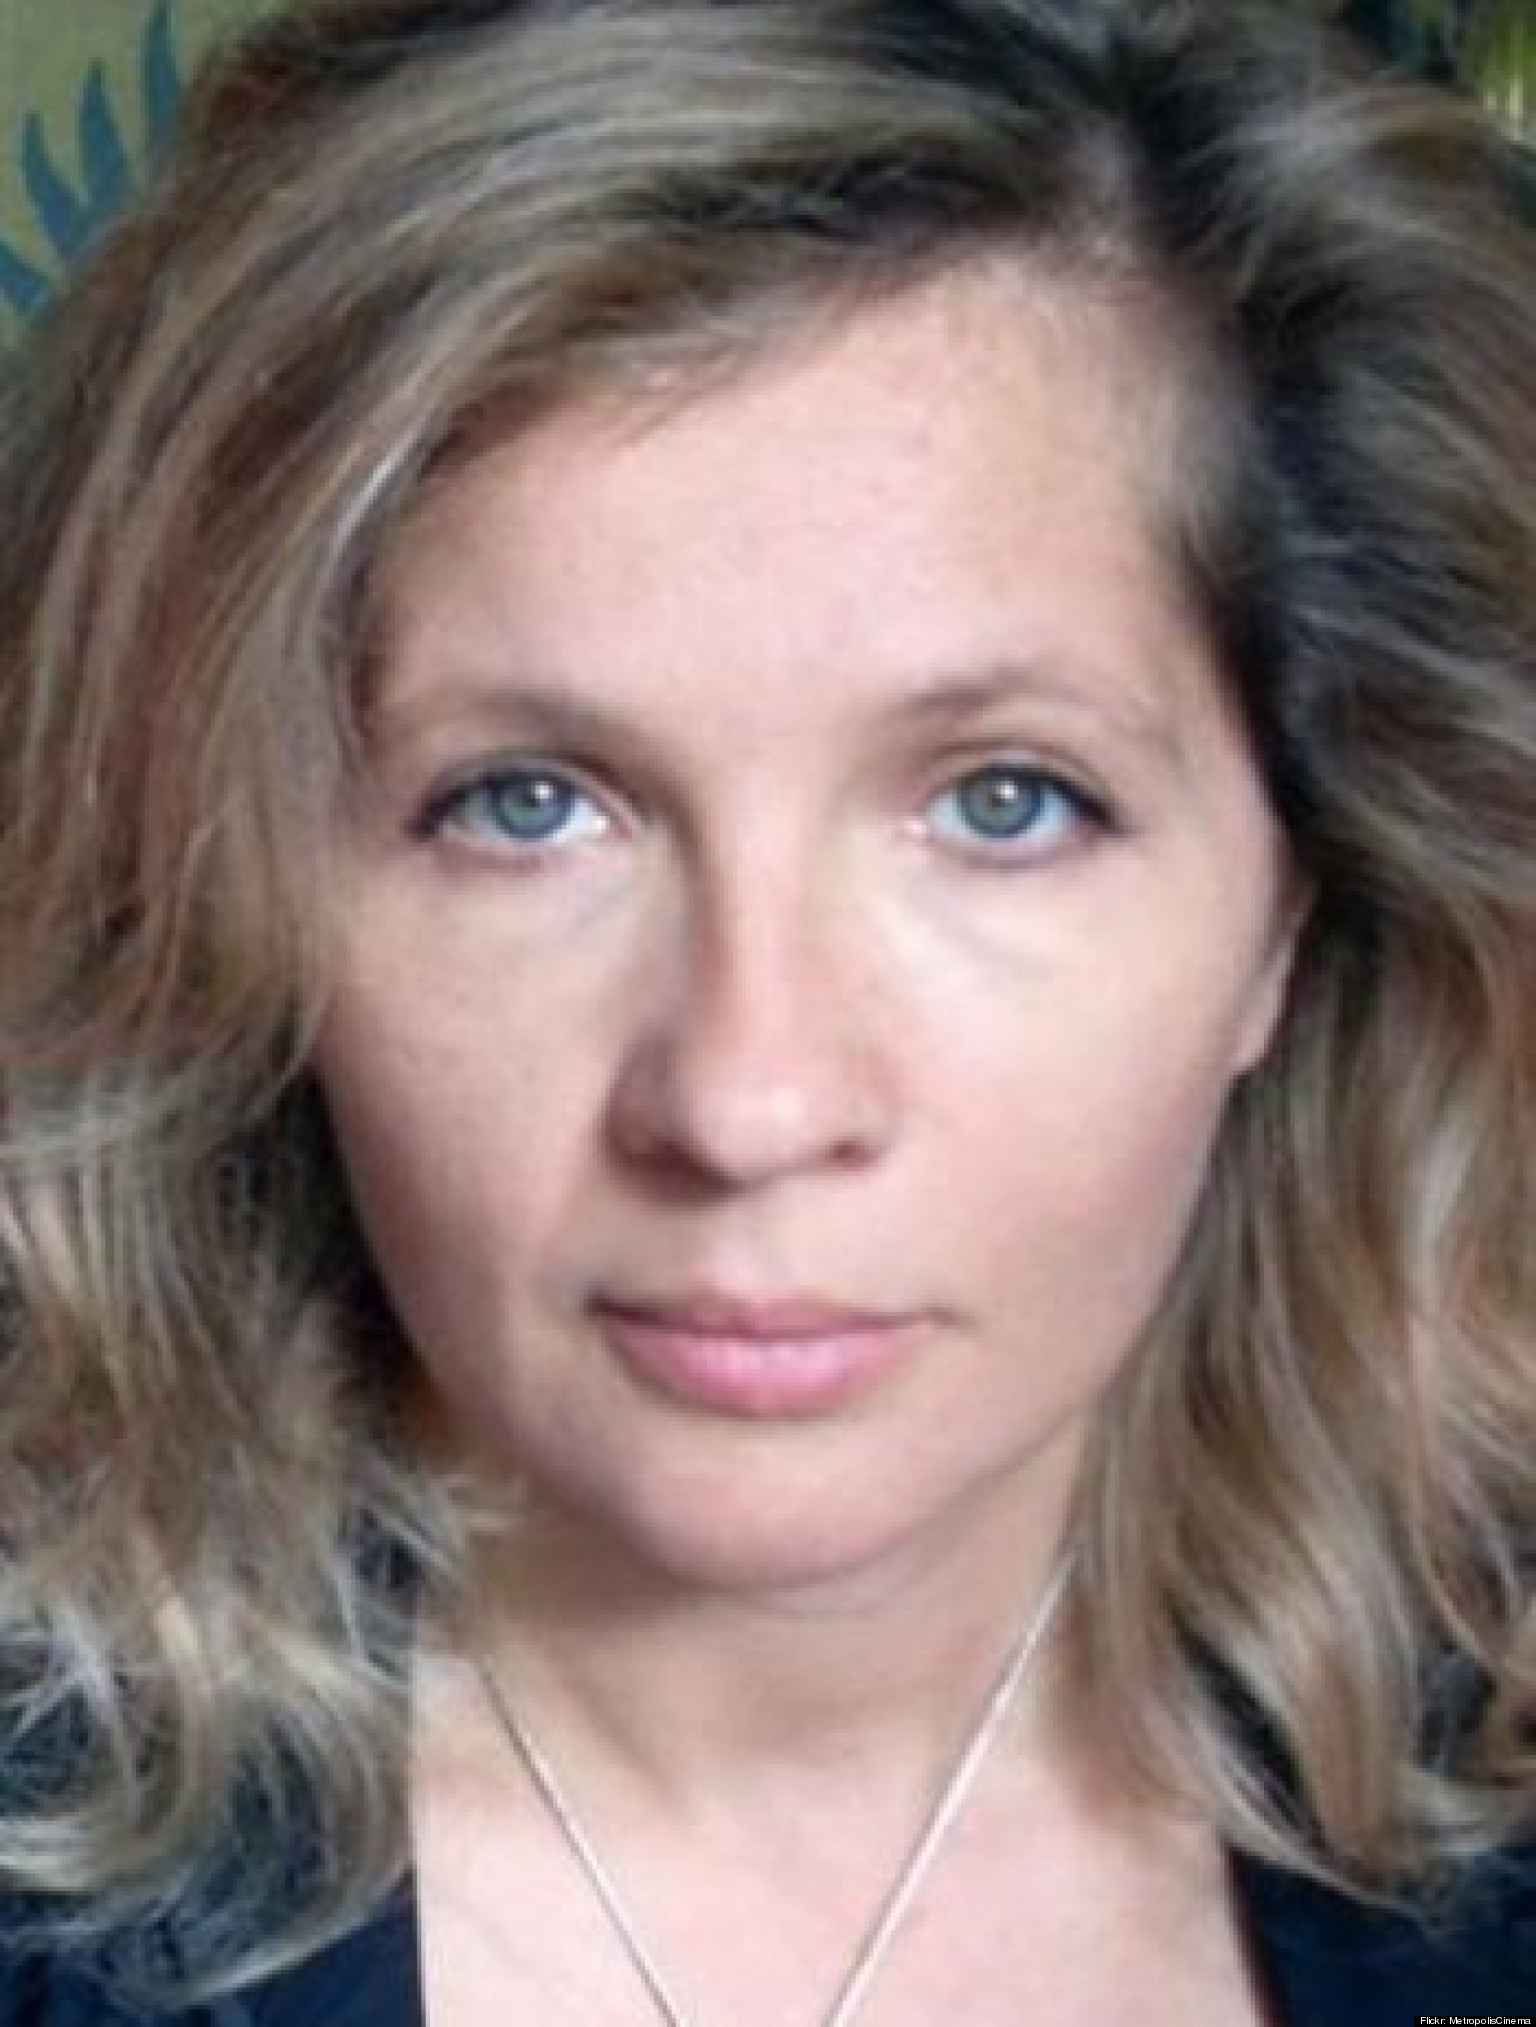 Eva IOnesco playboy Eva Ionesco Sues Mother Irina For Taking Pornographic Pictures Of Her As A  Child | HuffPost